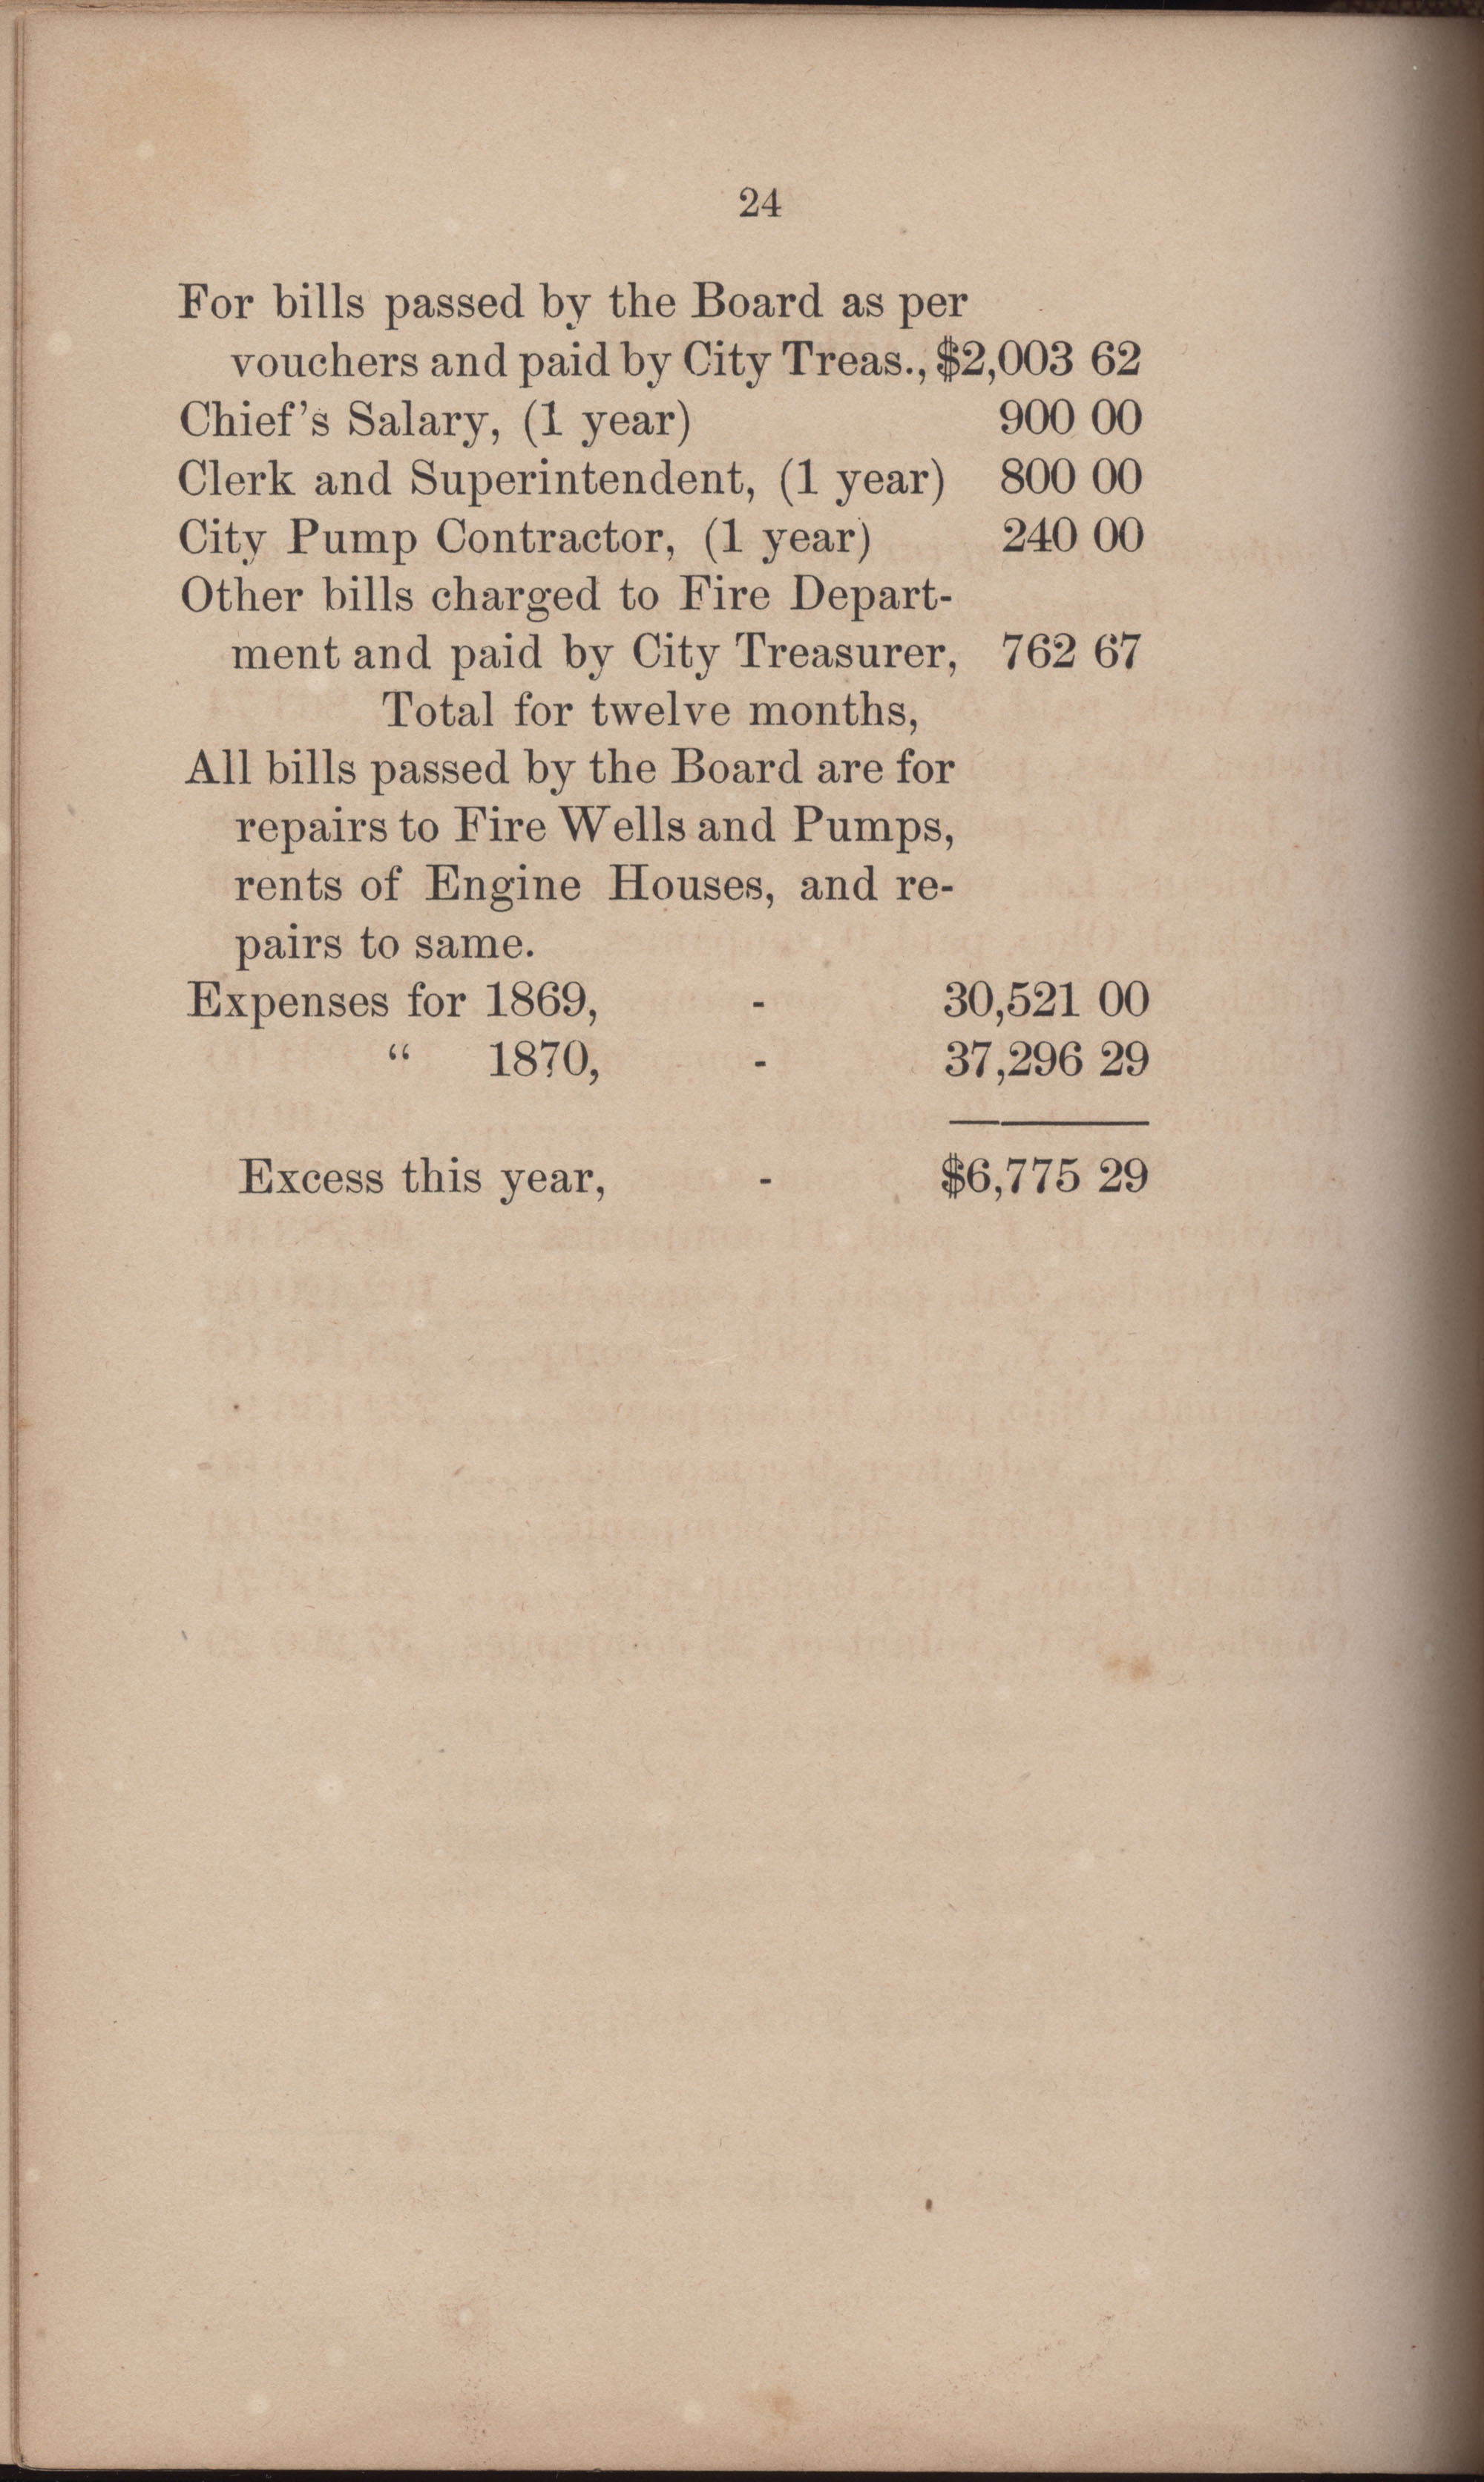 Annual Report of the Chief of the Fire Department of the City of Charleston, page 315